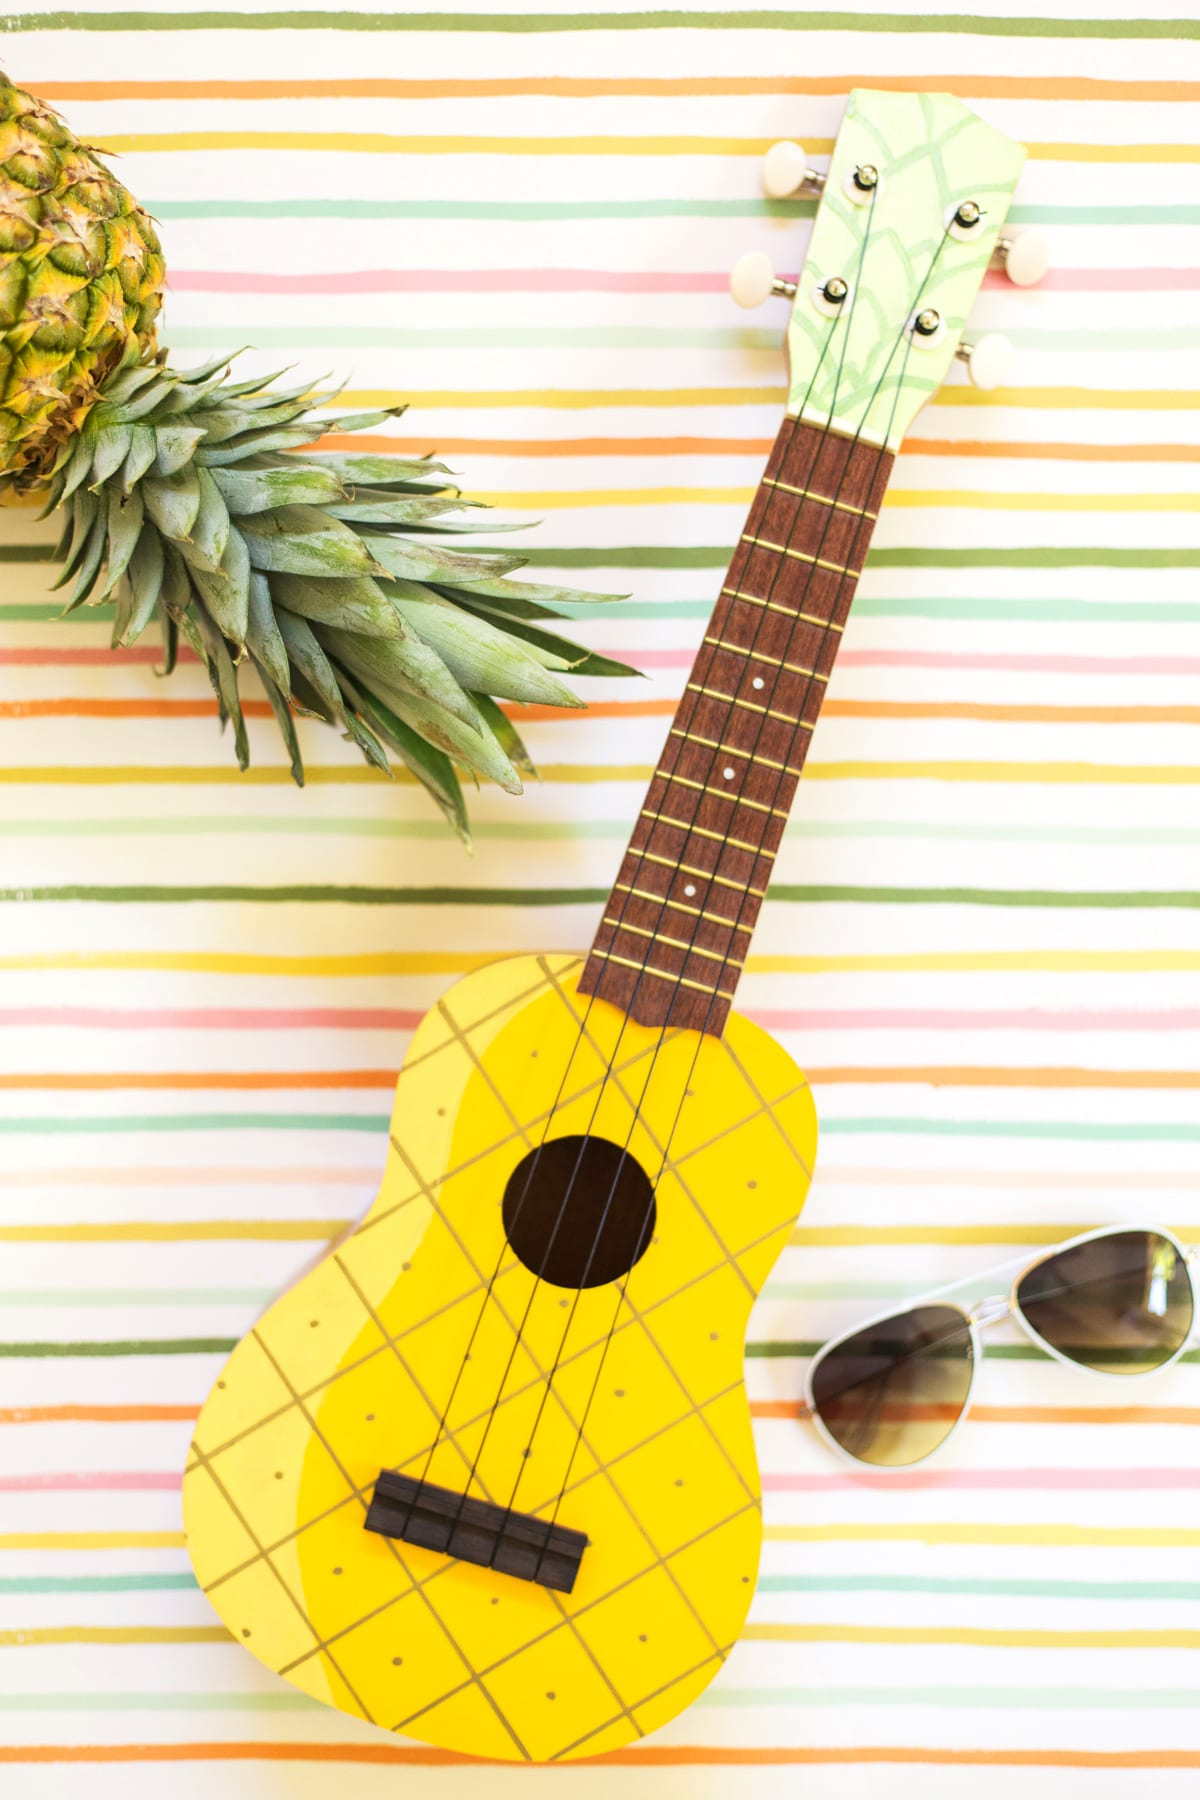 How to make a painted pineapple ukulele